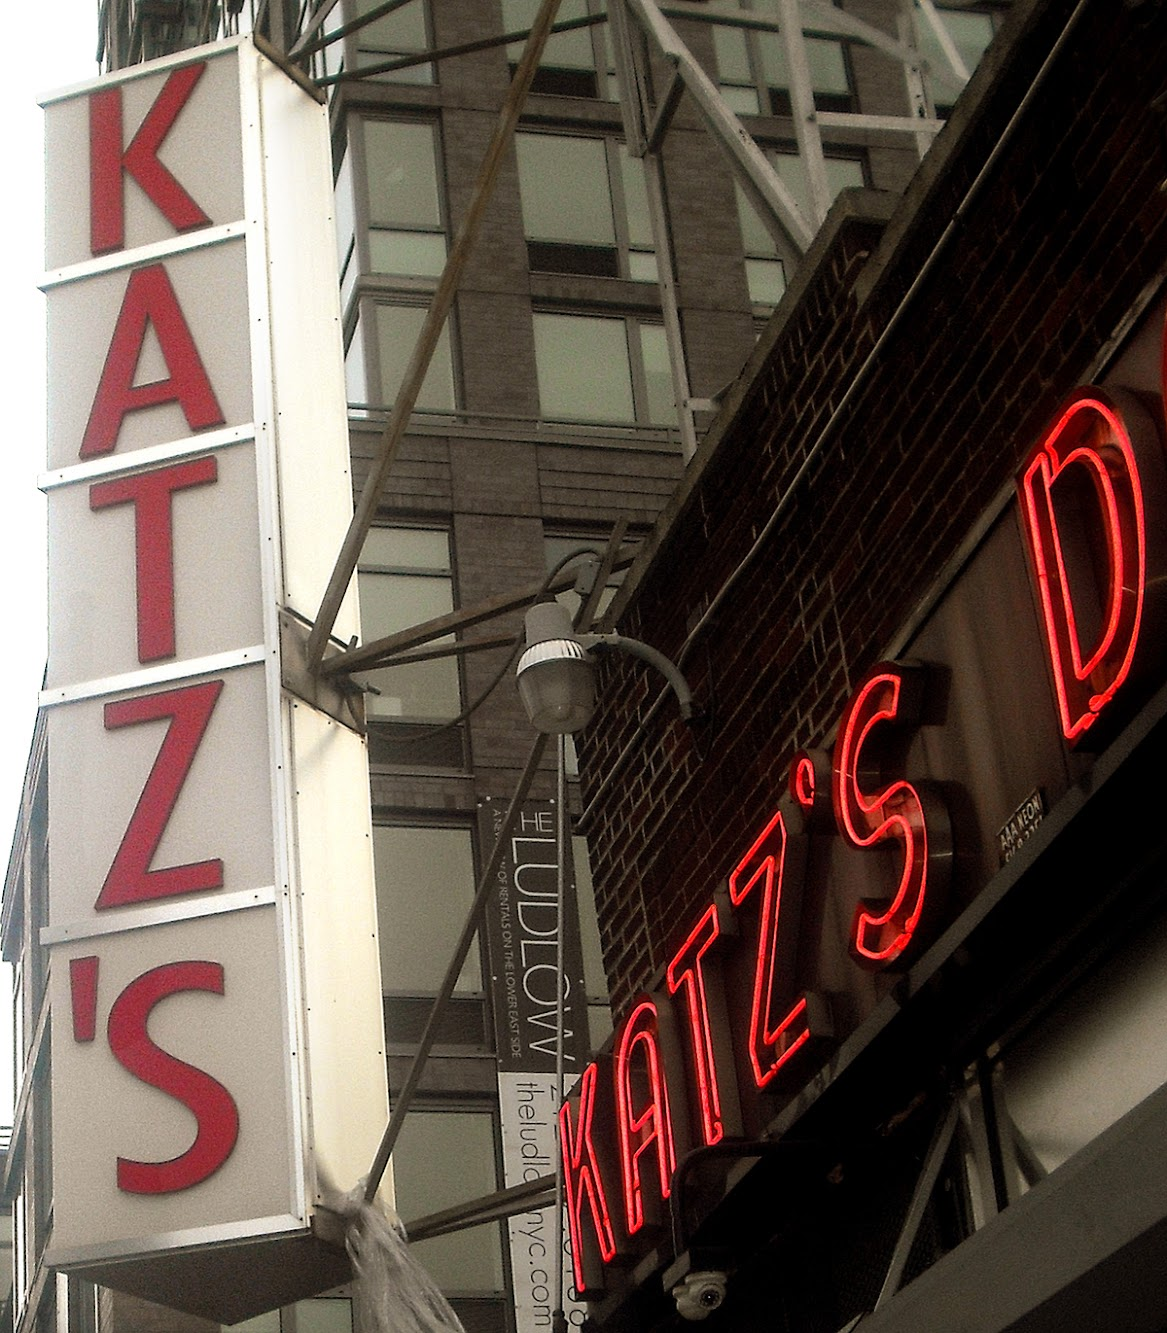 Review: Katz Deli